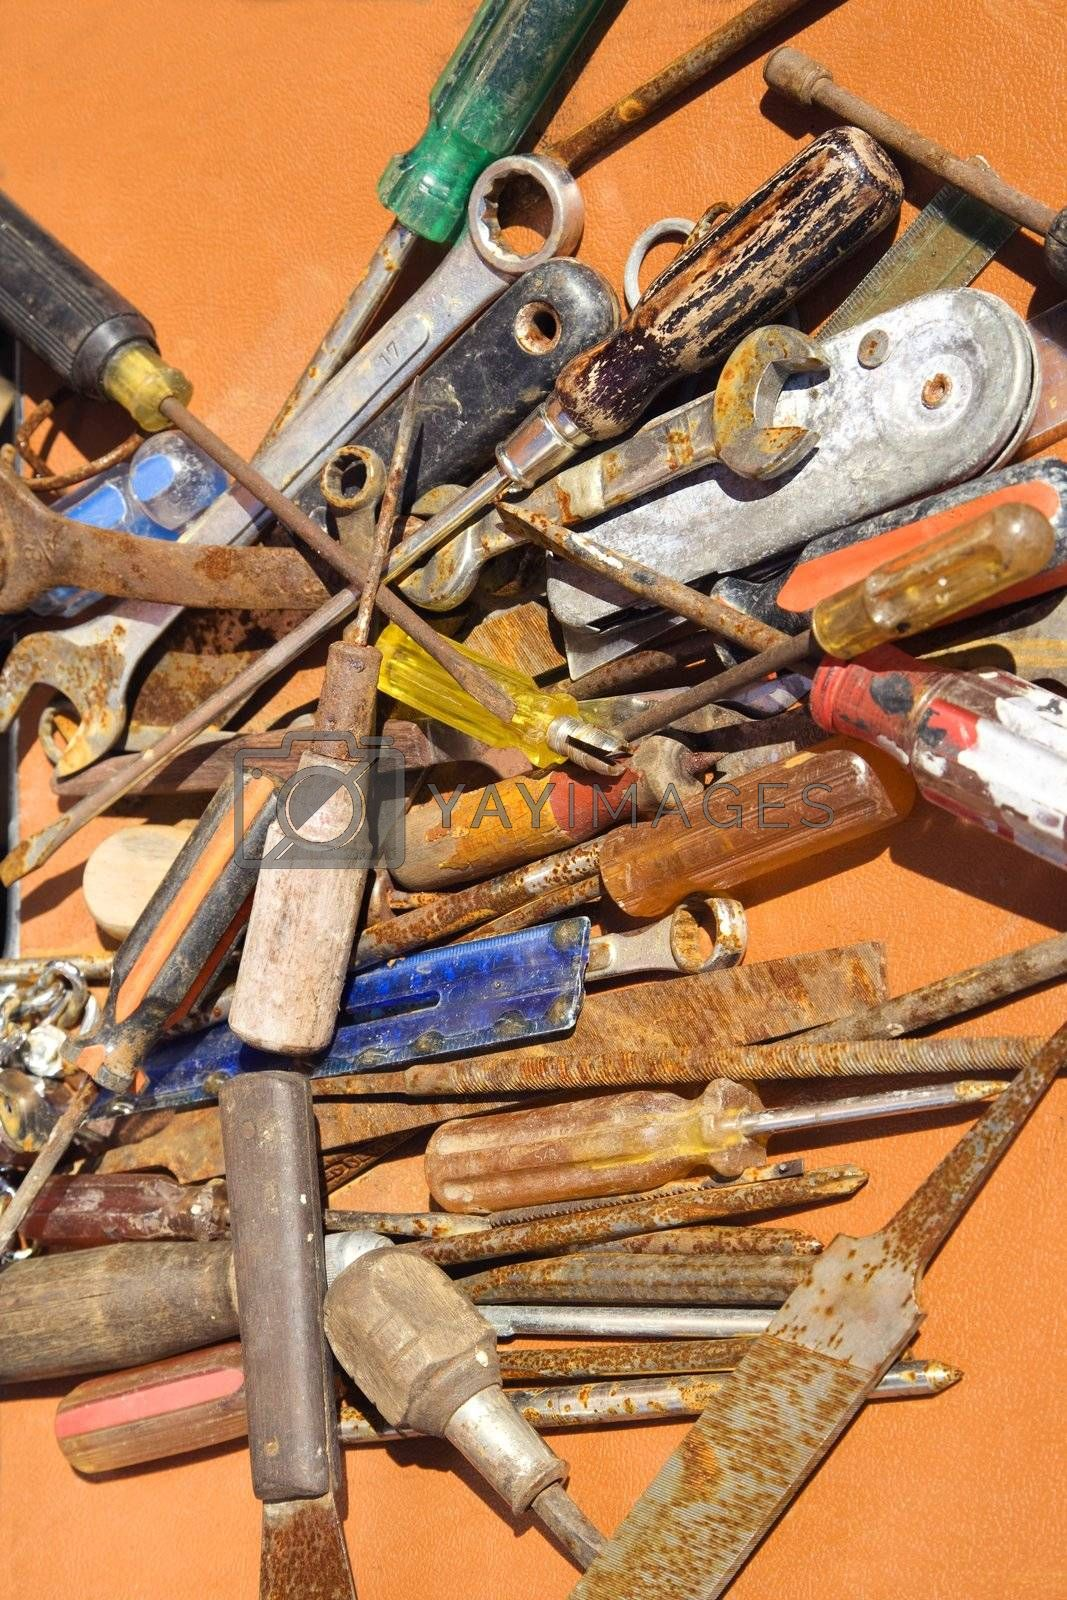 Old rusty tools lying on table.